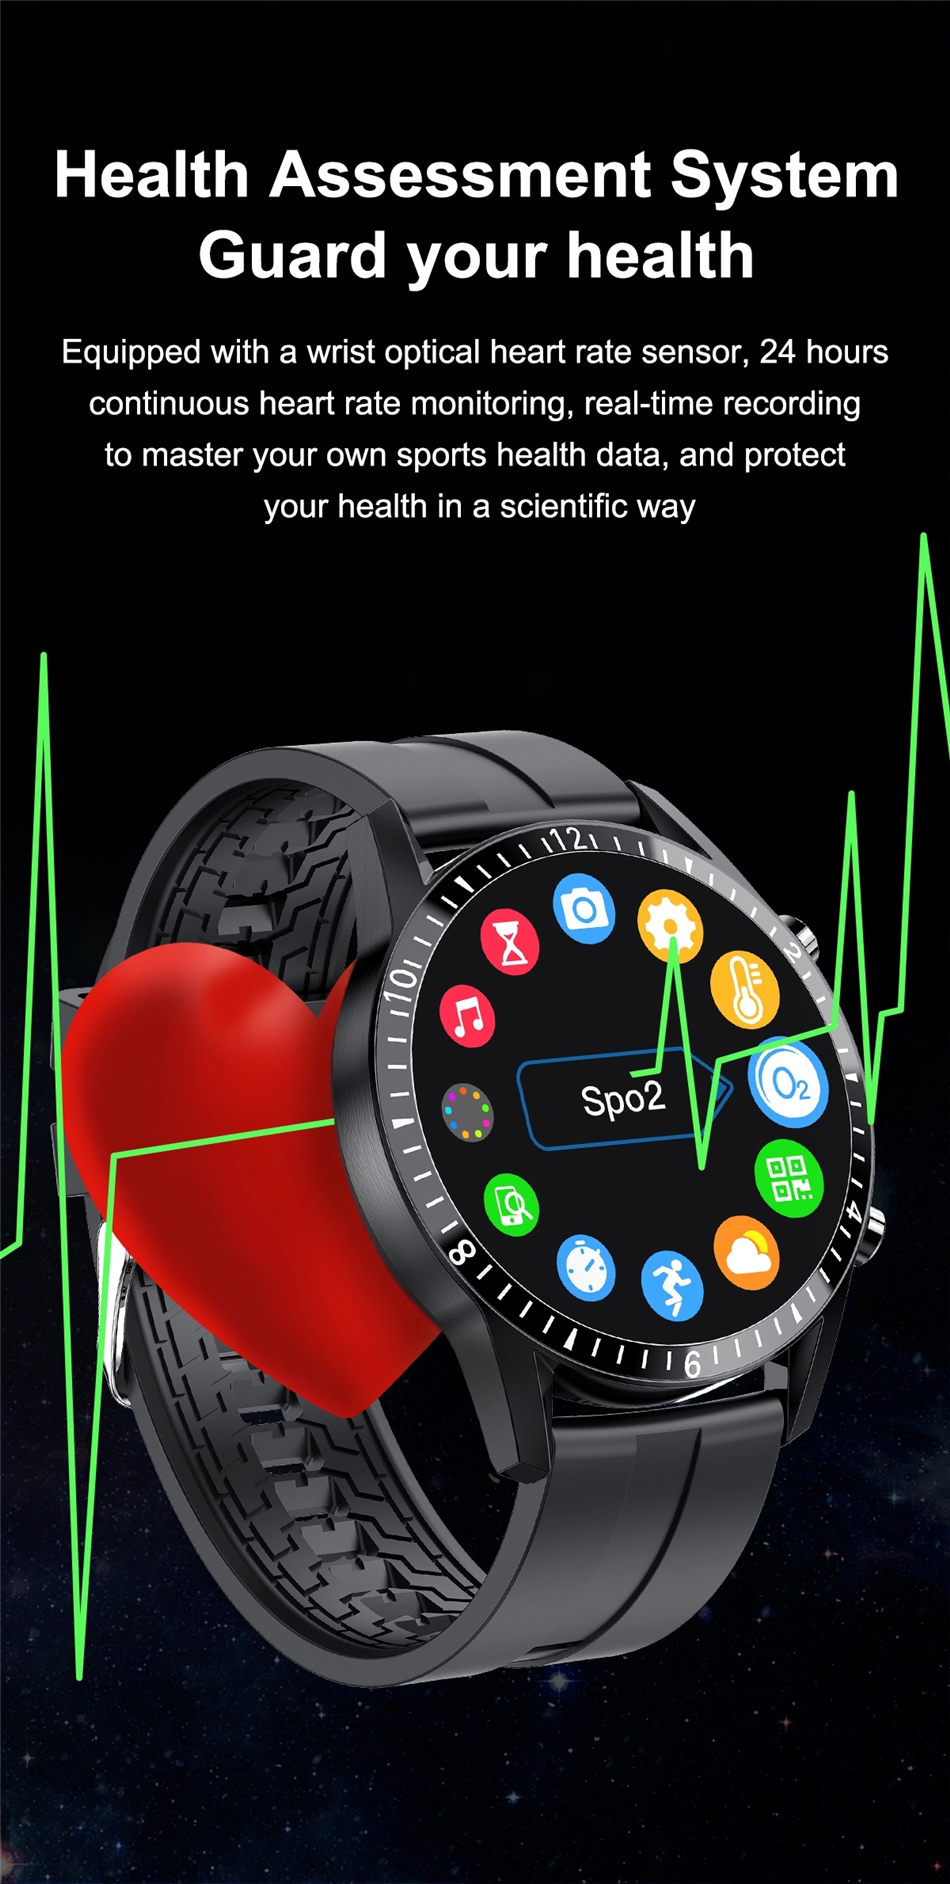 H54dc8c03586b4e9eaf319607d030a64fv 2021 Smart Watch Phone Full Touch Screen Sport Fitness Watch IP68 Waterproof Bluetooth Connection For Android ios smartwatch Men